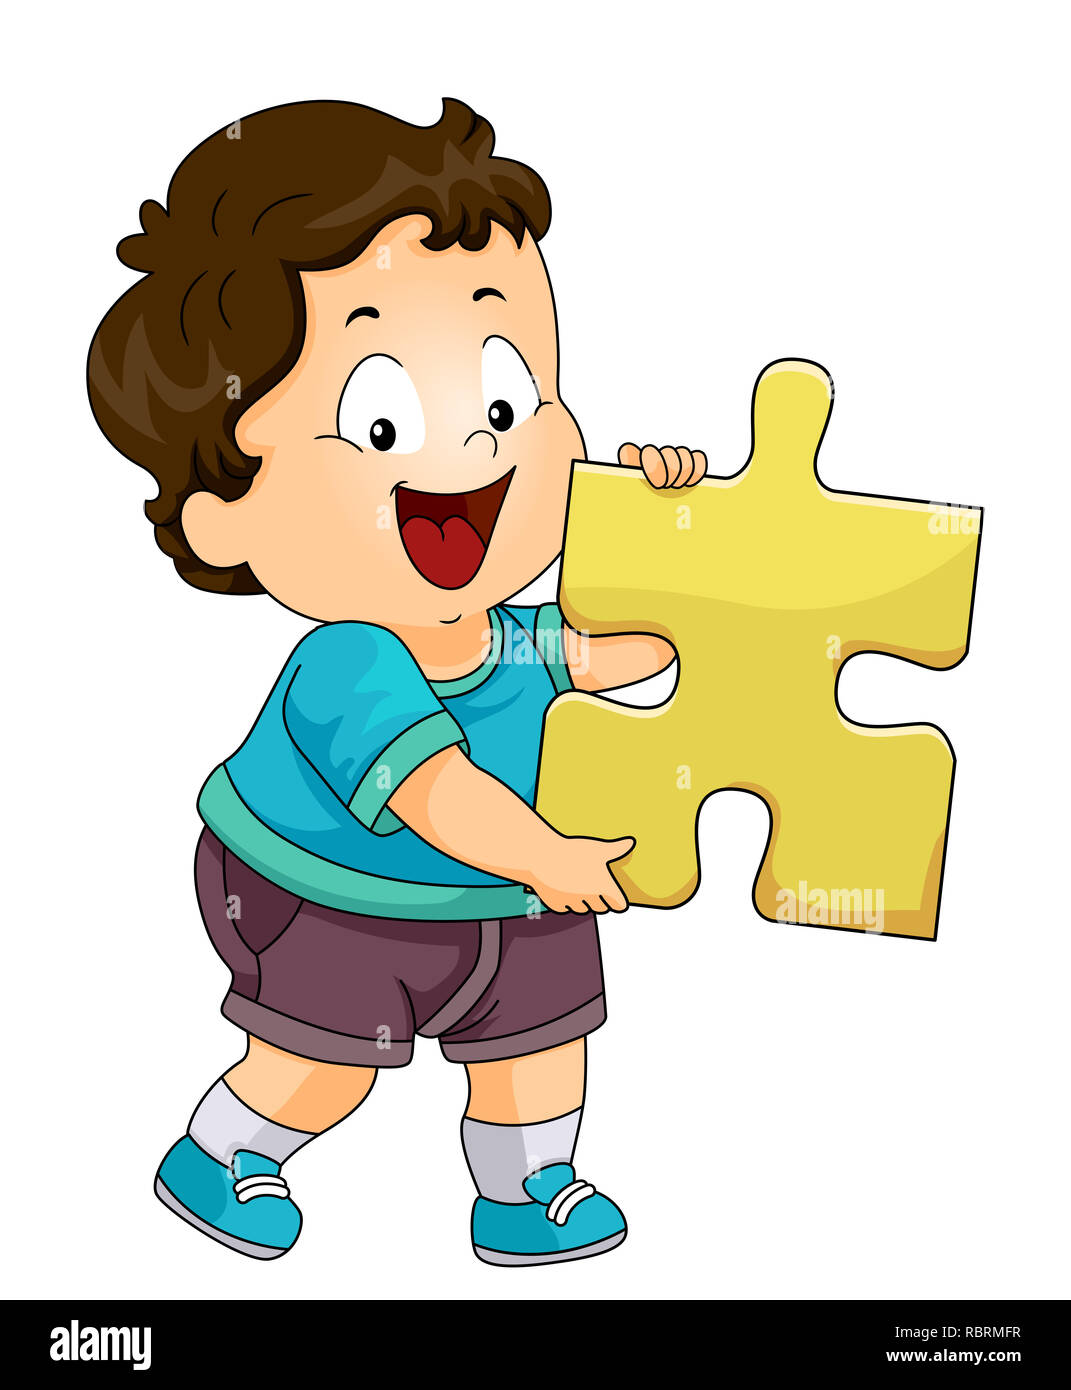 Illustration of a Kid Boy Toddler Holding a Big Puzzle Piece